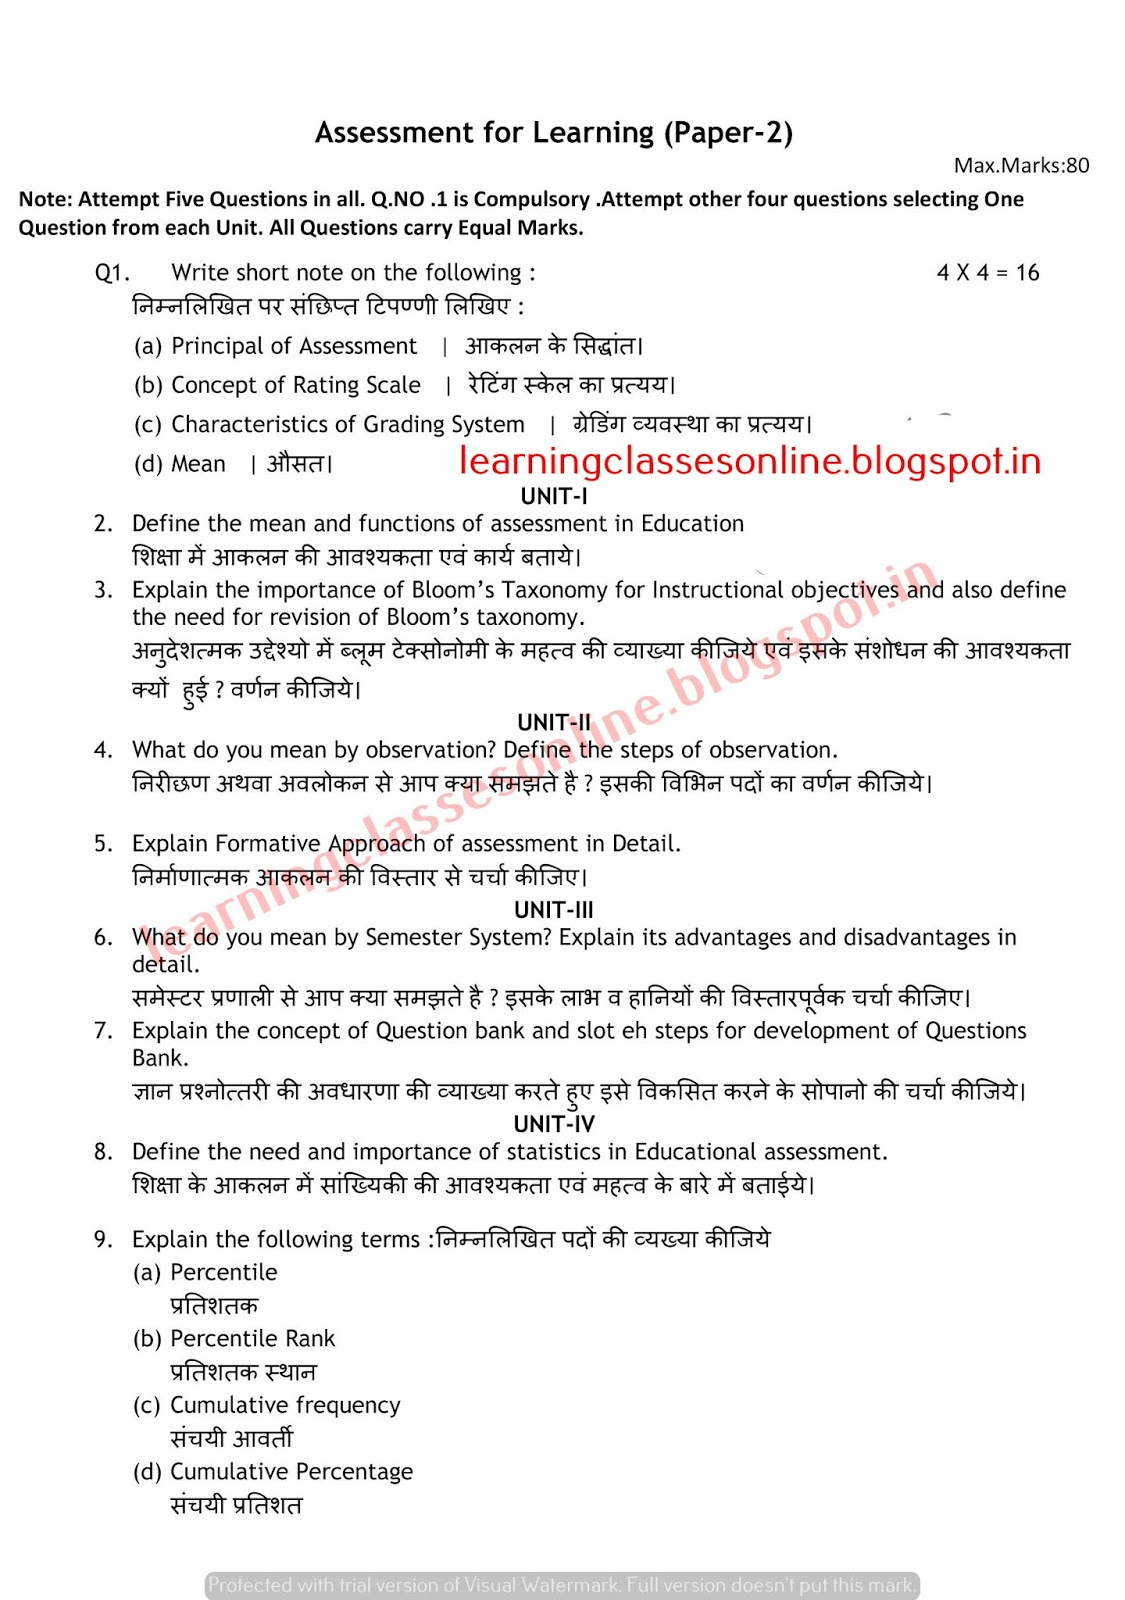 assessment of learning second year b.ed question paper